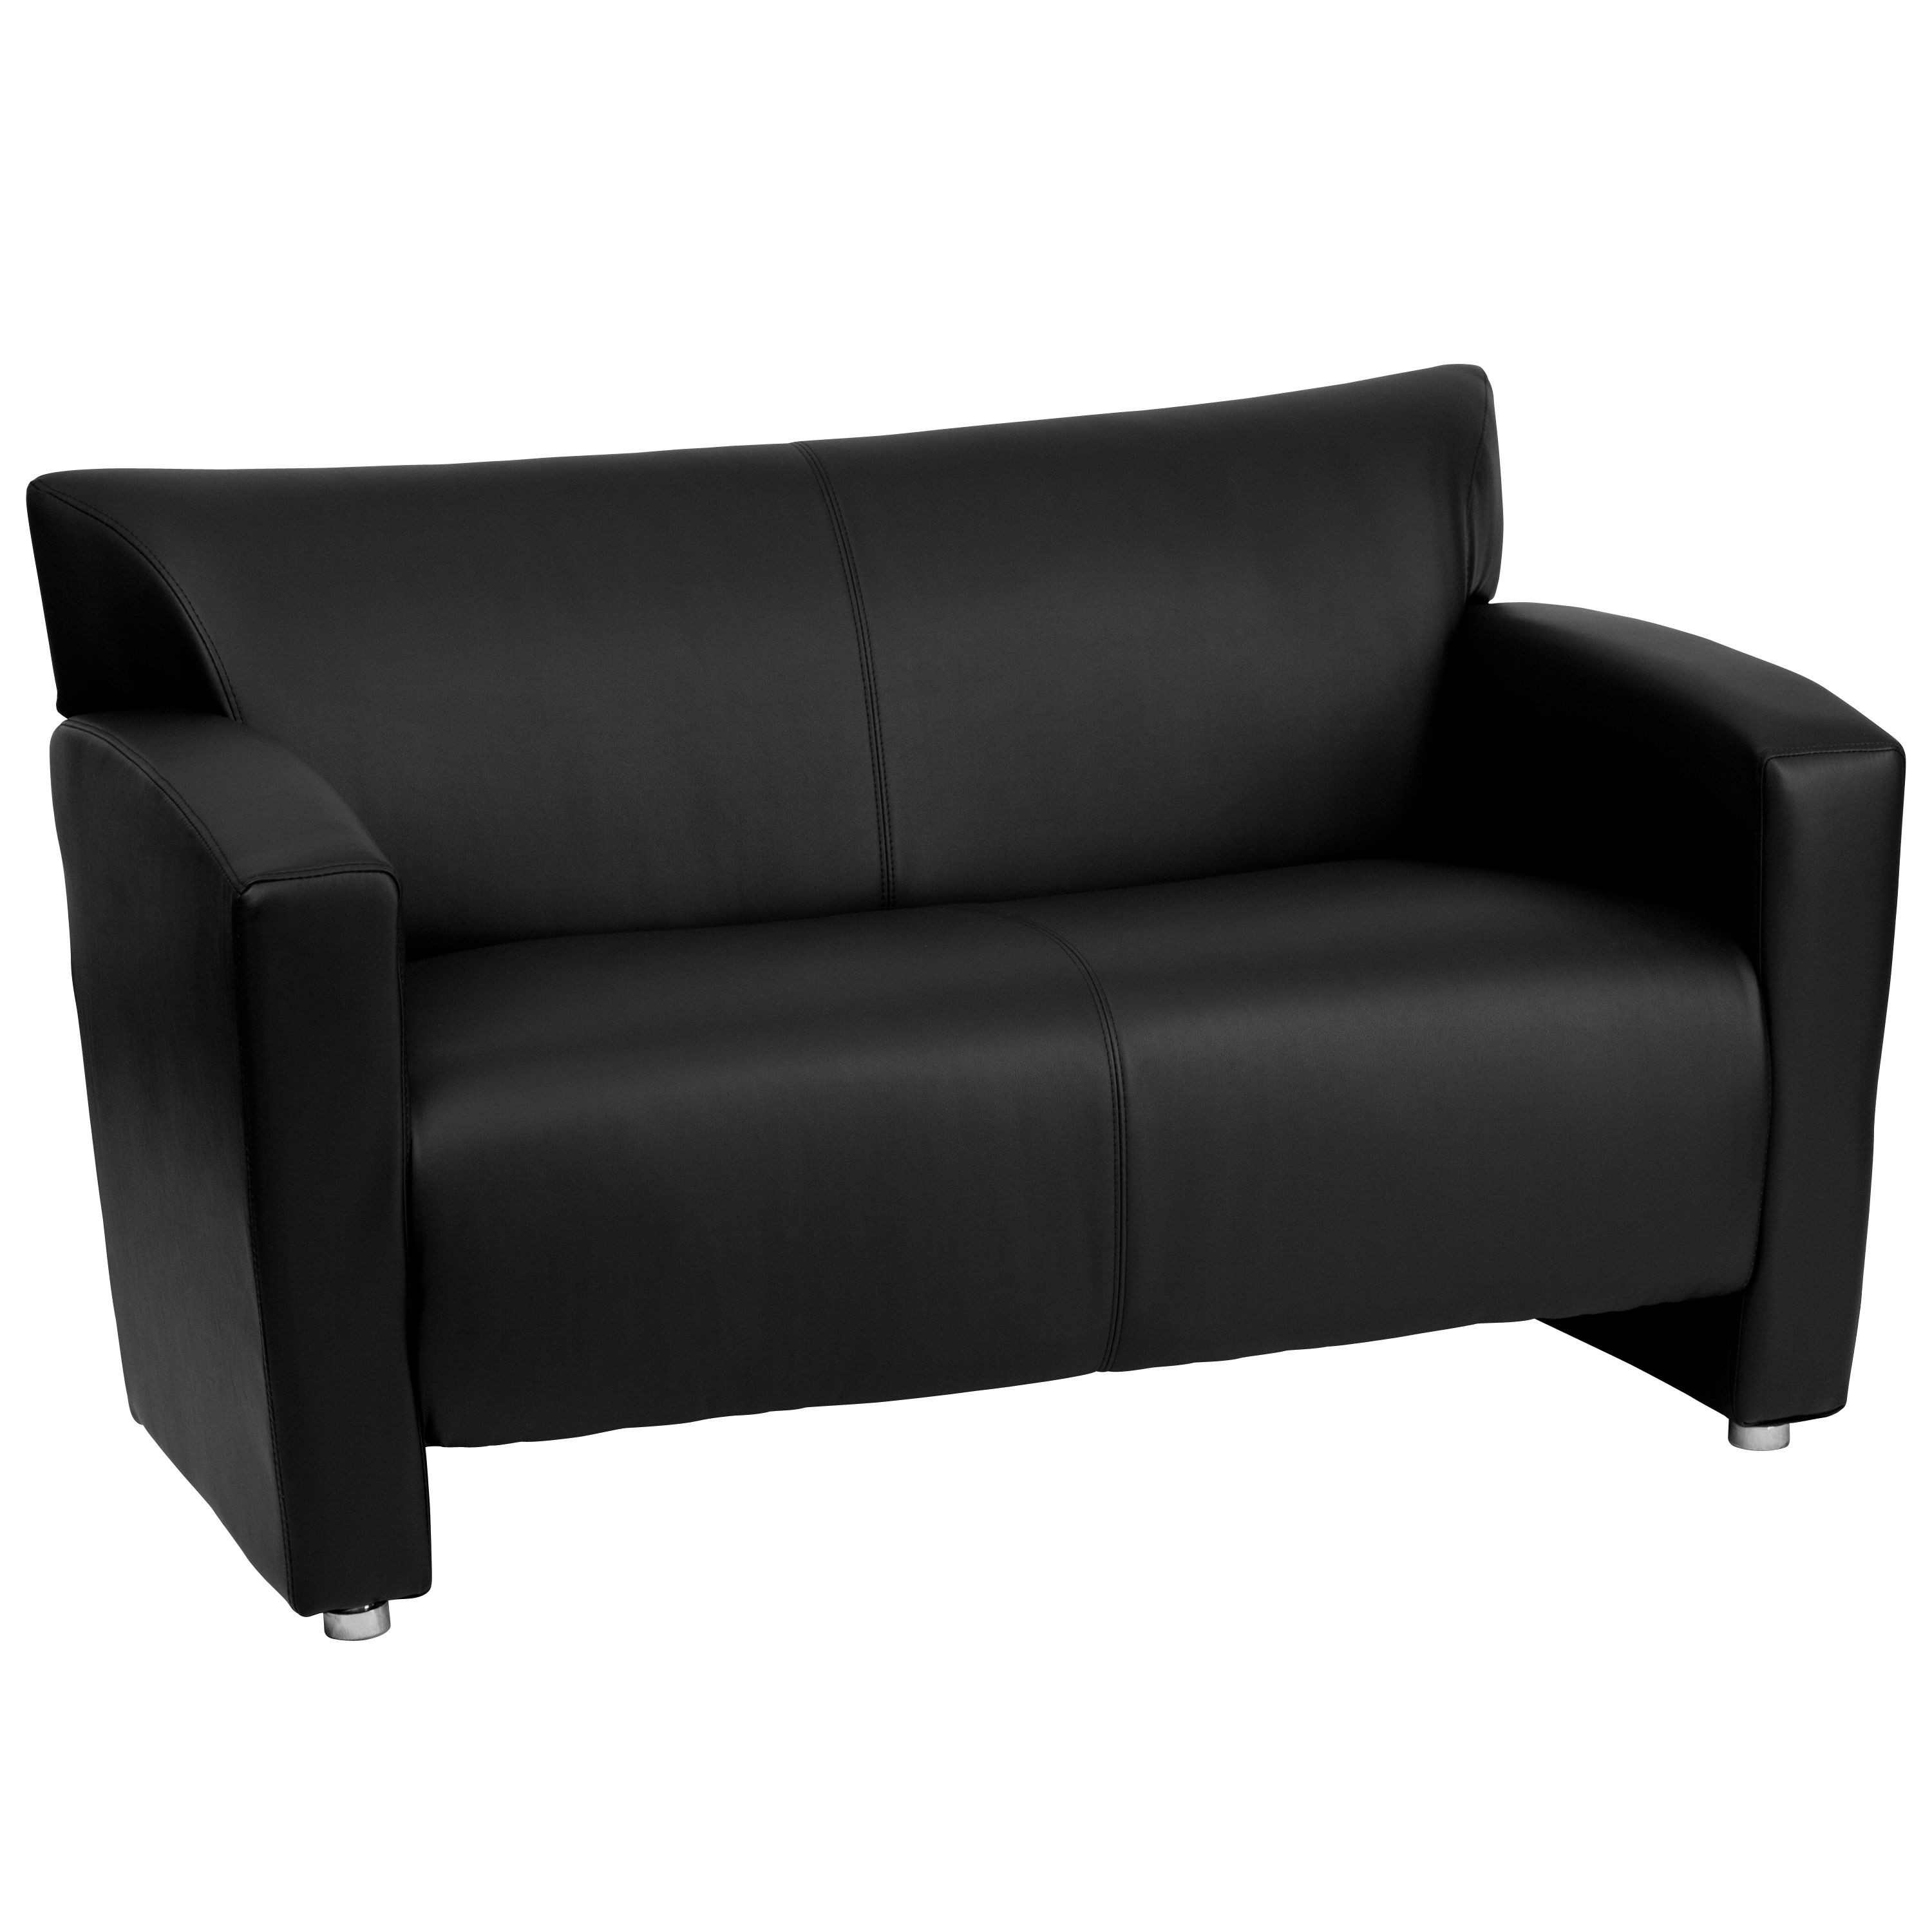 HERCULES Majesty Series Black Leather Love Seat